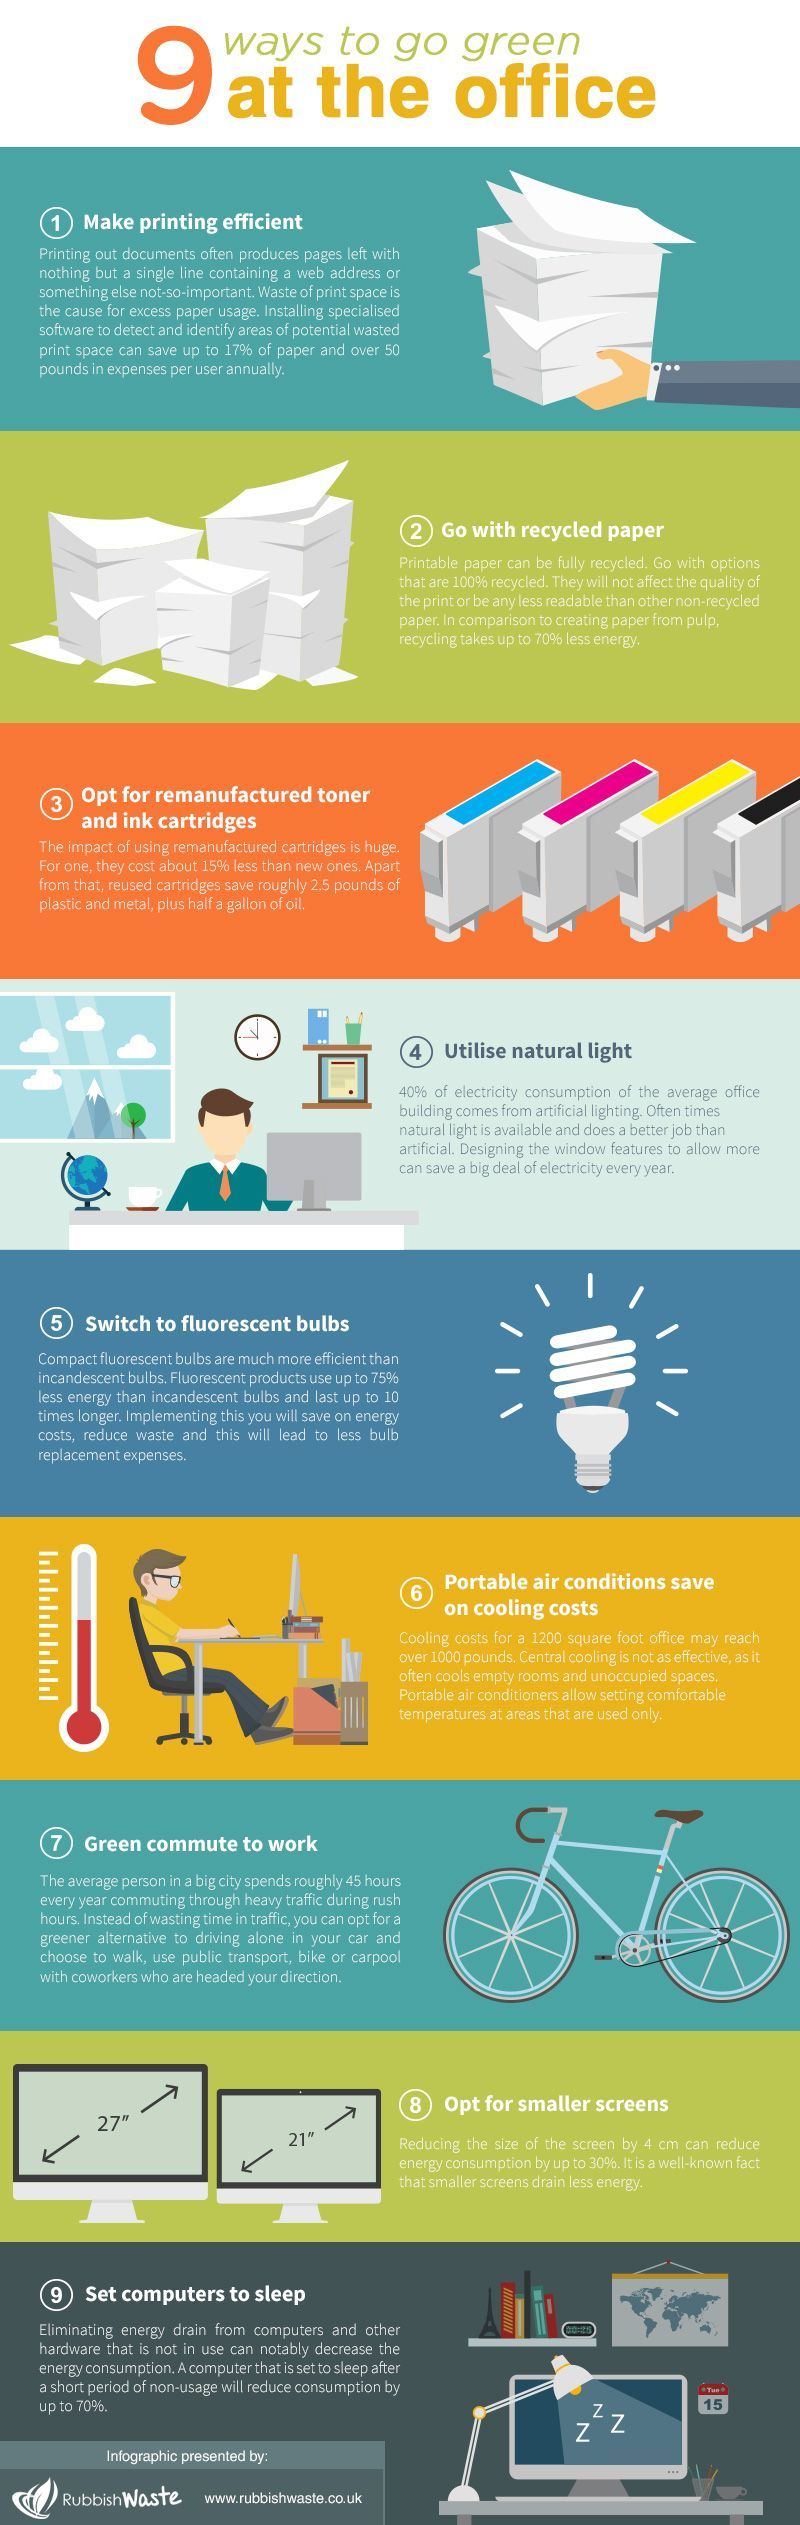 9 Ways to Go Green at the Office #Infographic